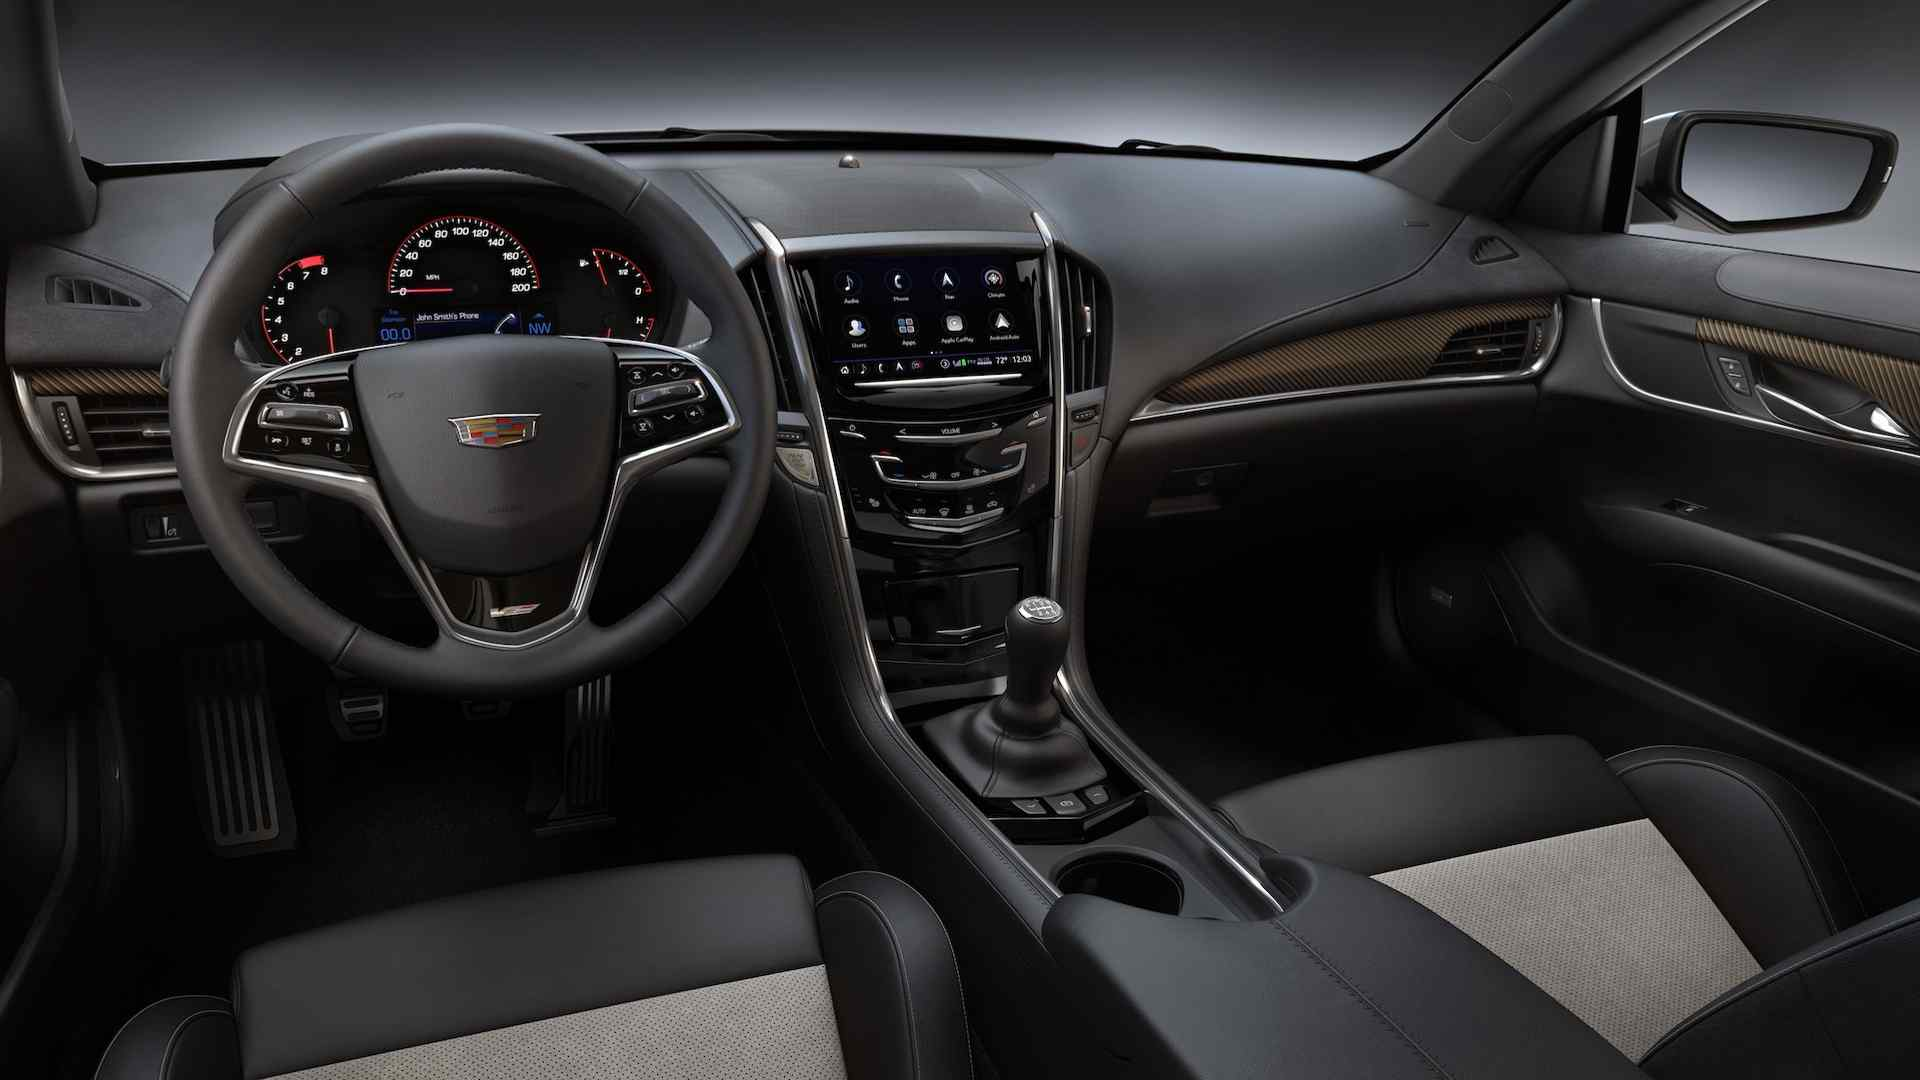 33 Best Review 2019 Cadillac Cts V Coupe Prices for 2019 Cadillac Cts V Coupe